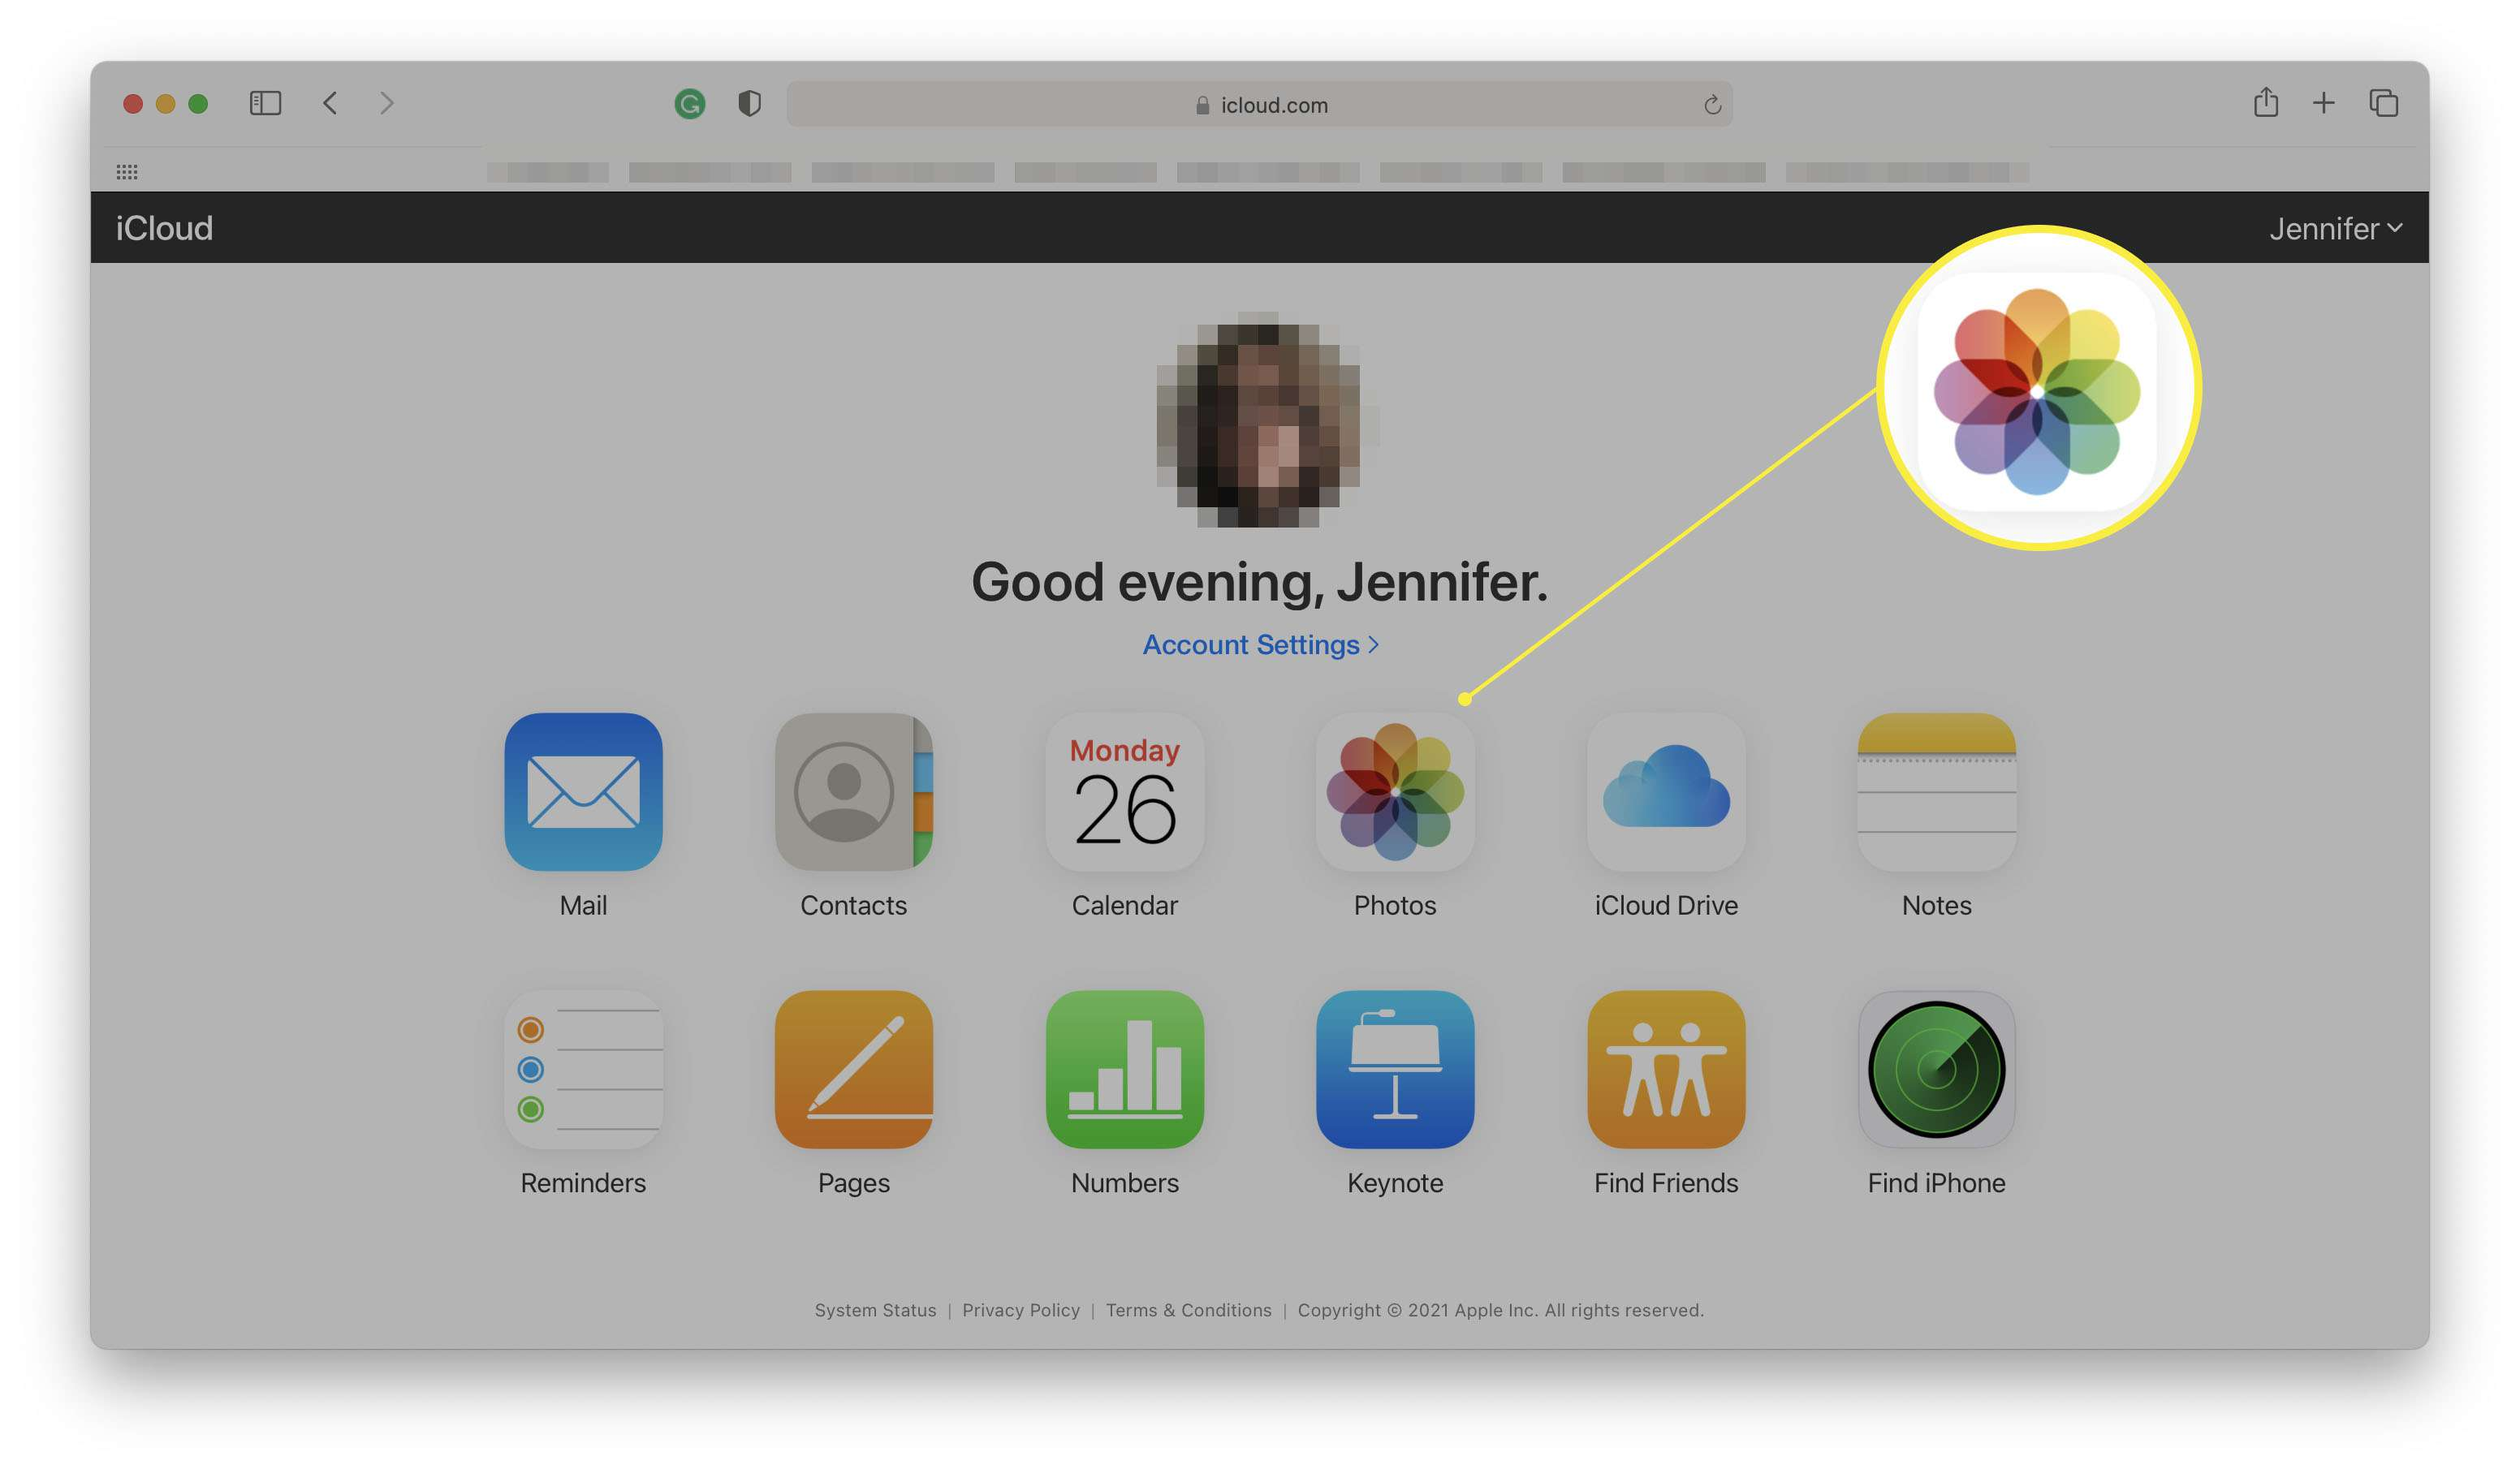 iCloud.com with Photos icon highlighted